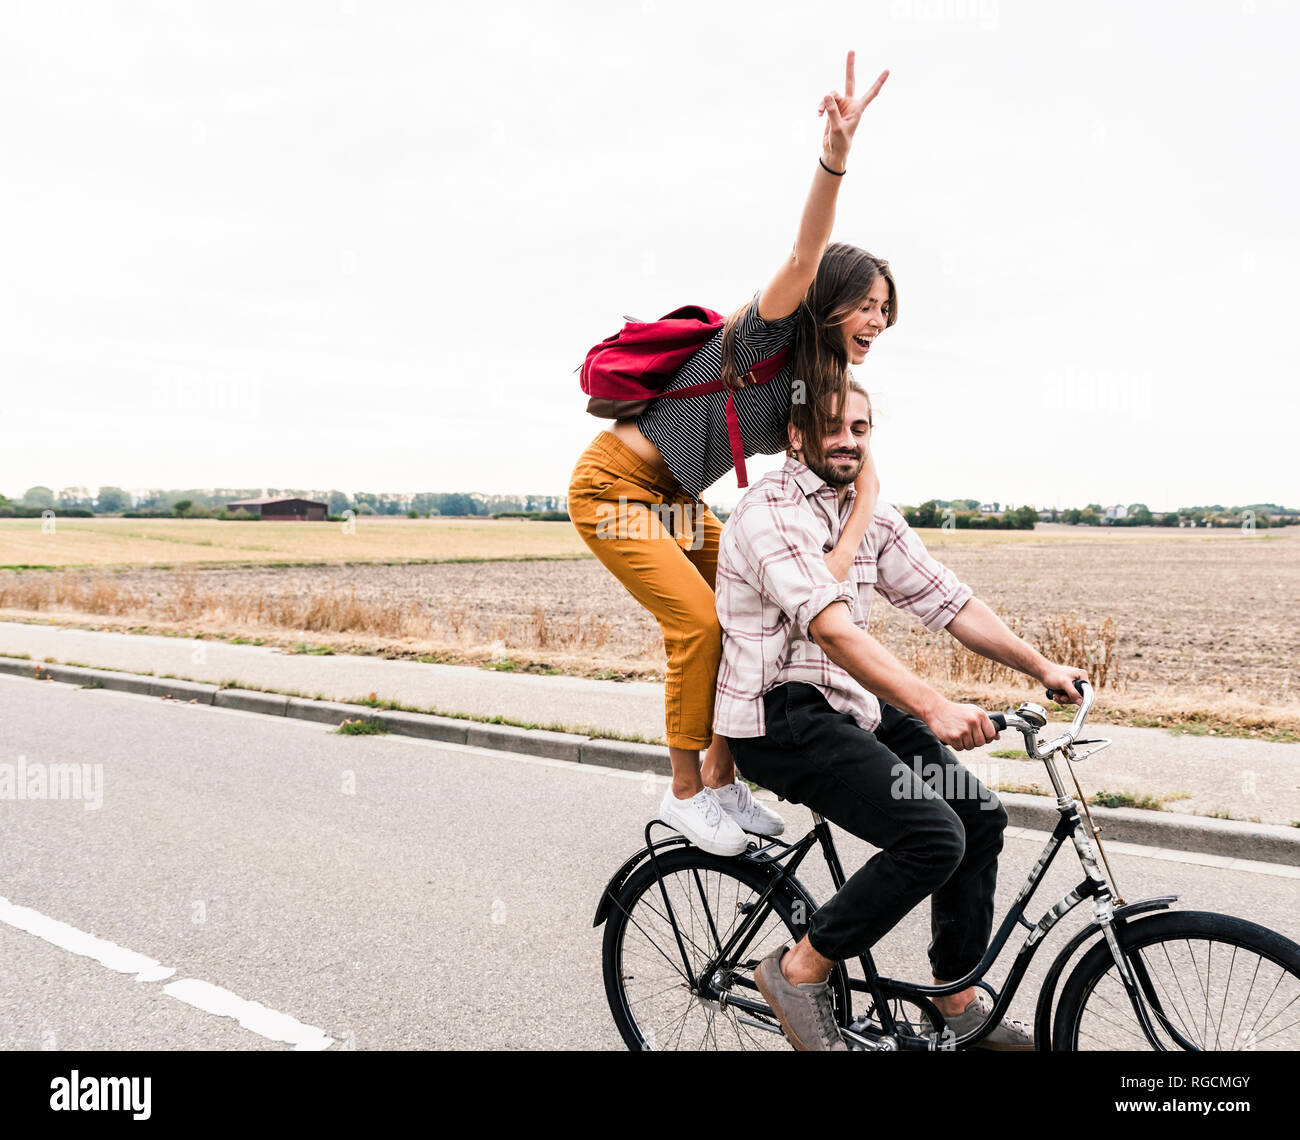 Happy young couple riding together on one bicycle on country road Stock Photo